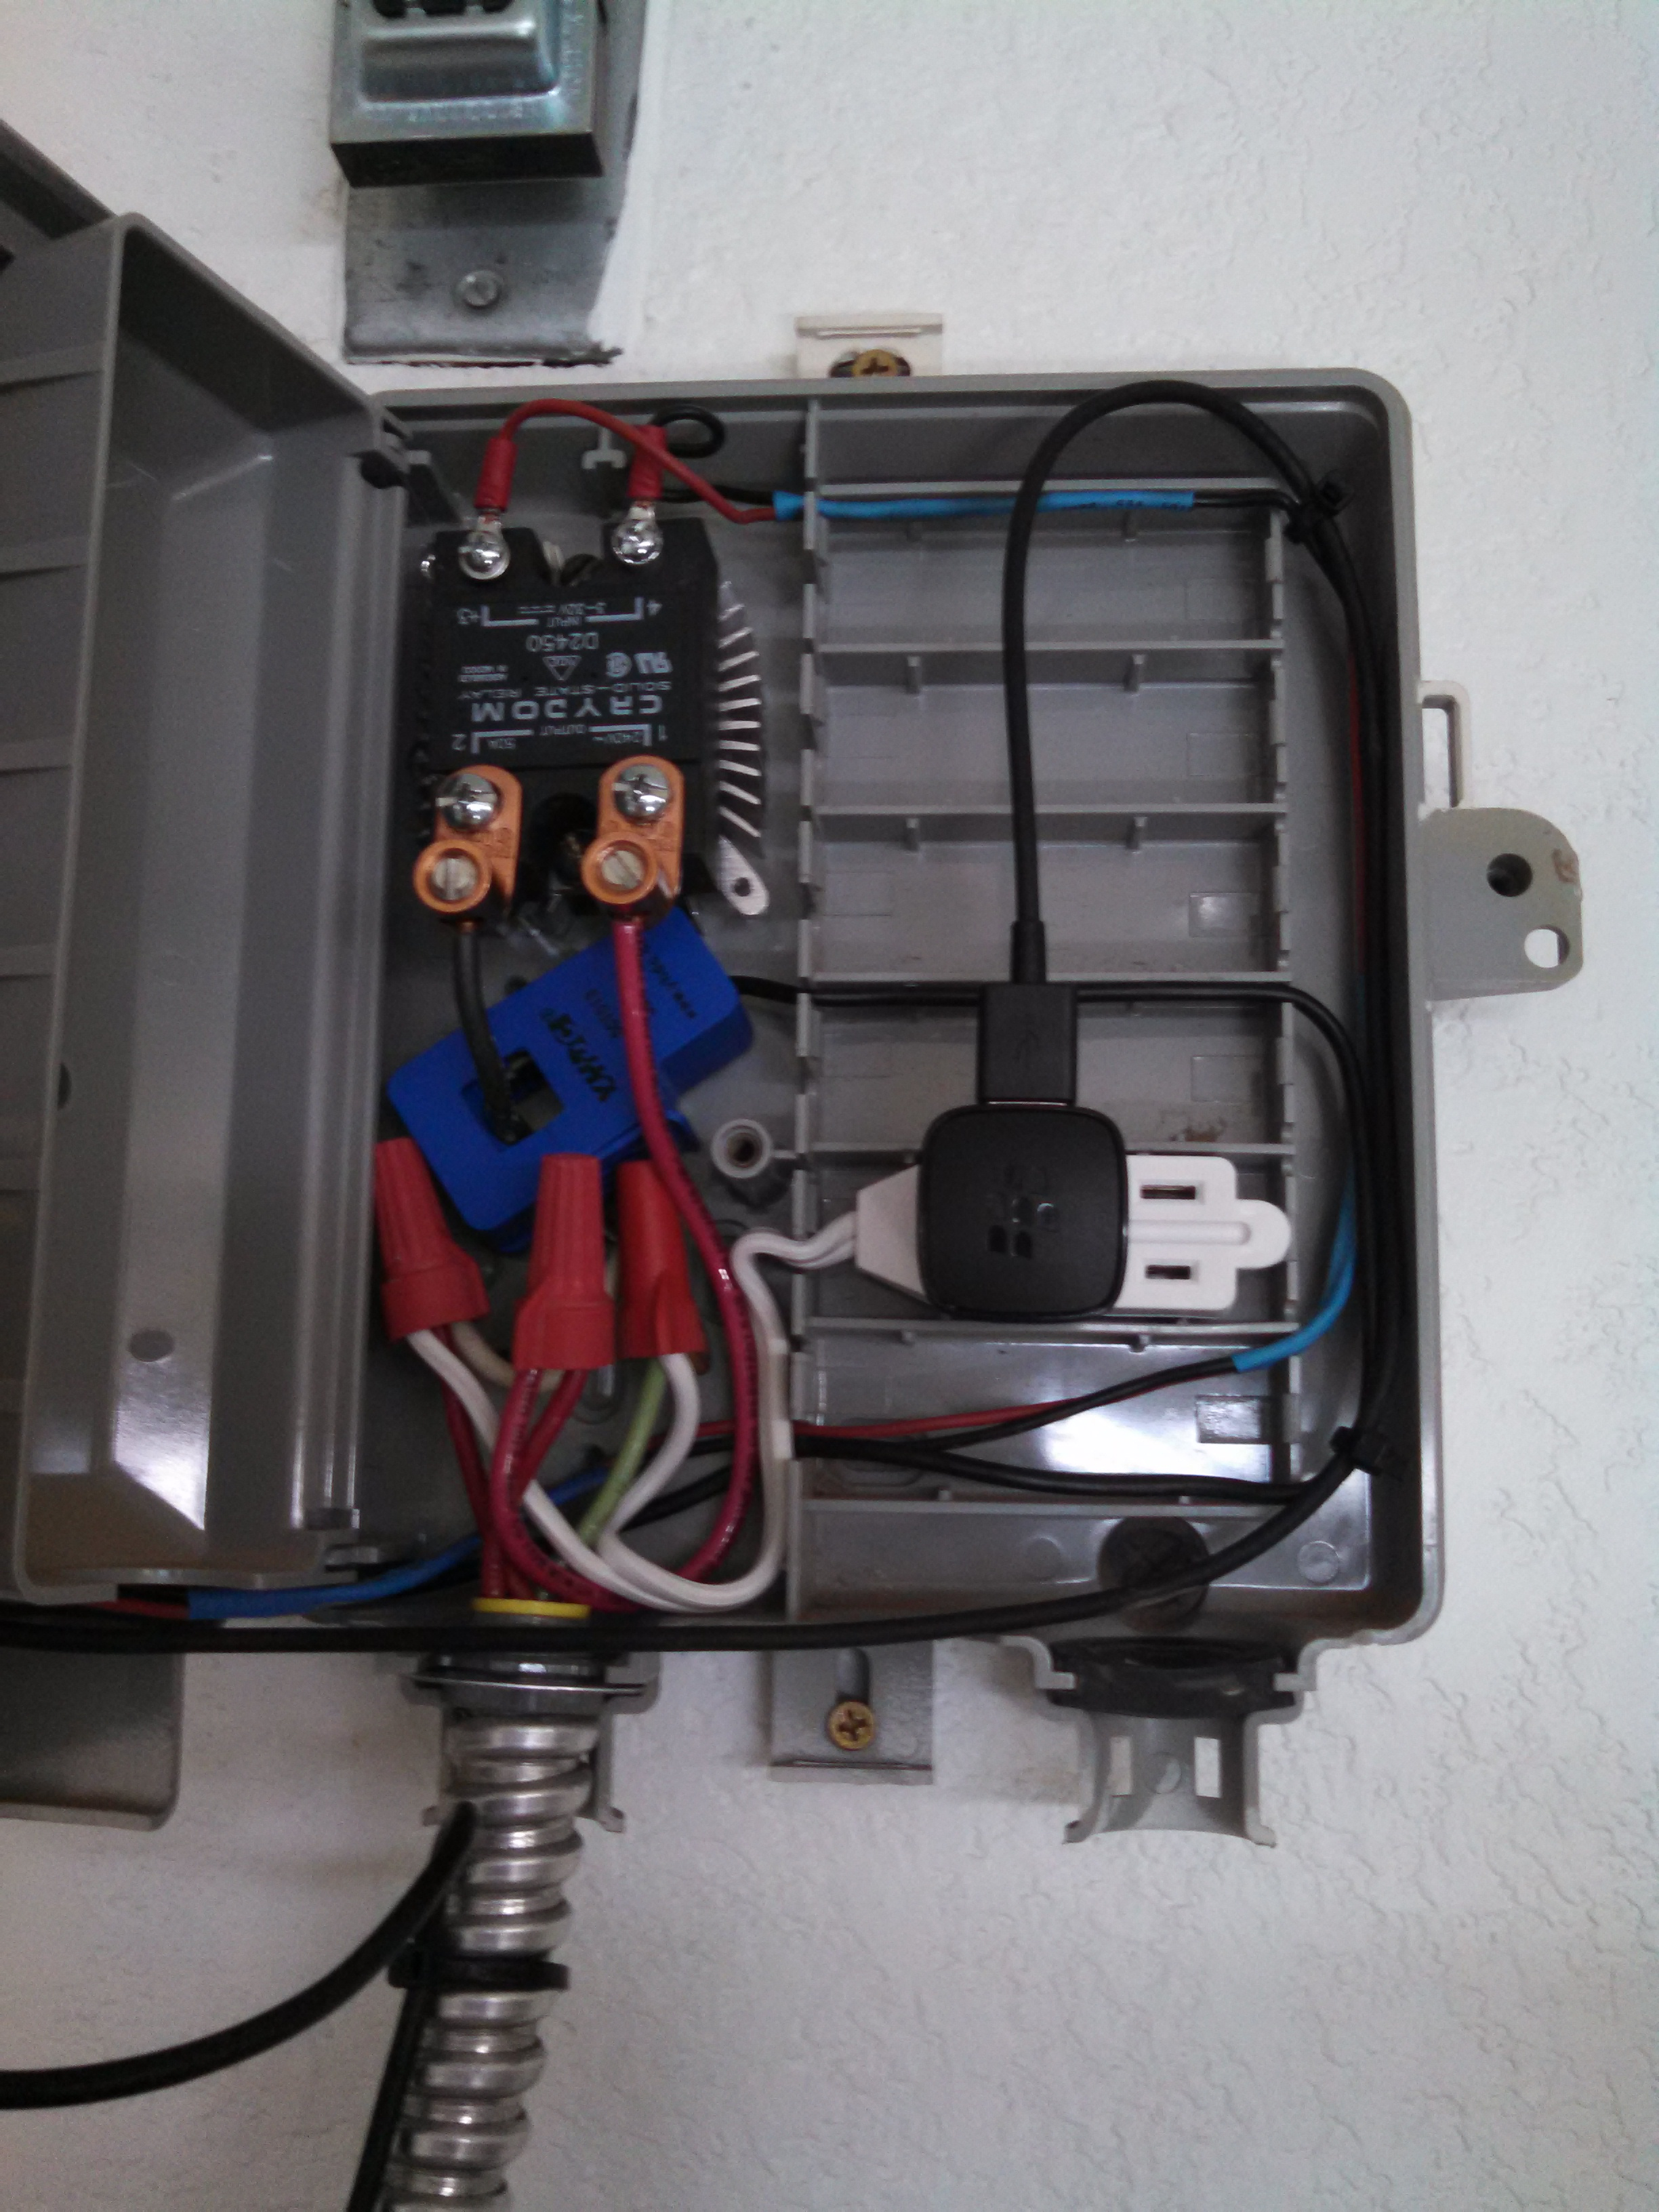 Tinker Labz - Water Heater Control Box View 2